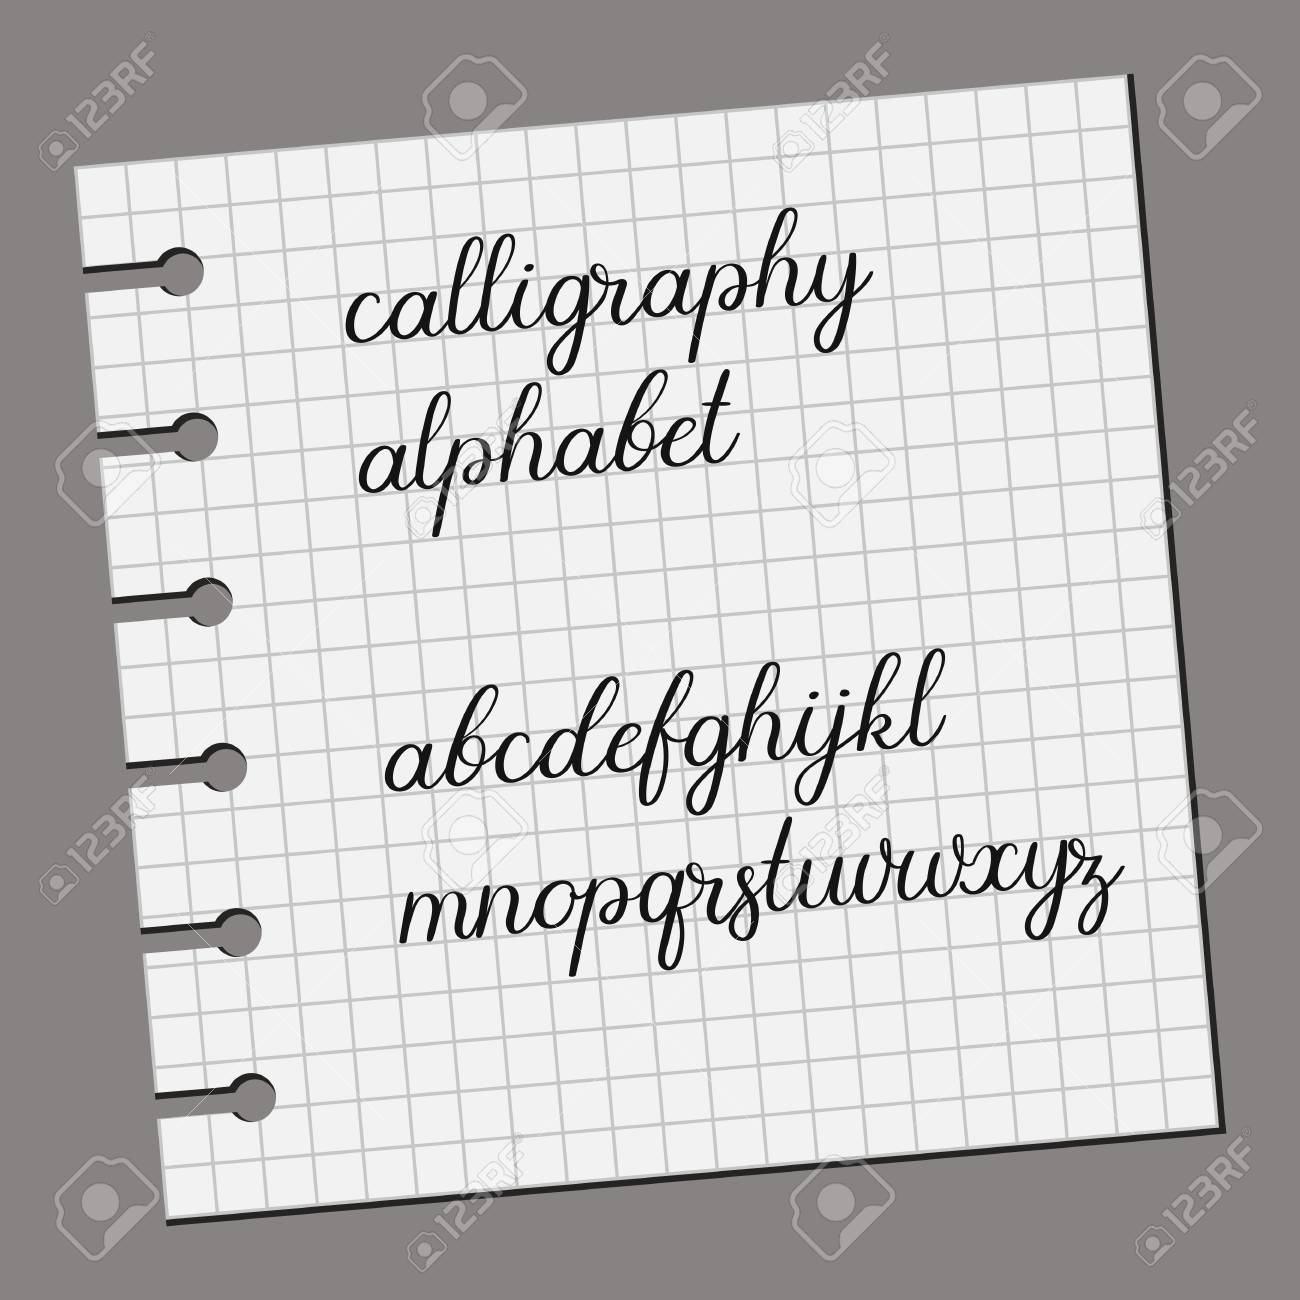 Calligraphy Alphabet Handwritten Font Vector Illustration Wedding Feather Ink Style Letters